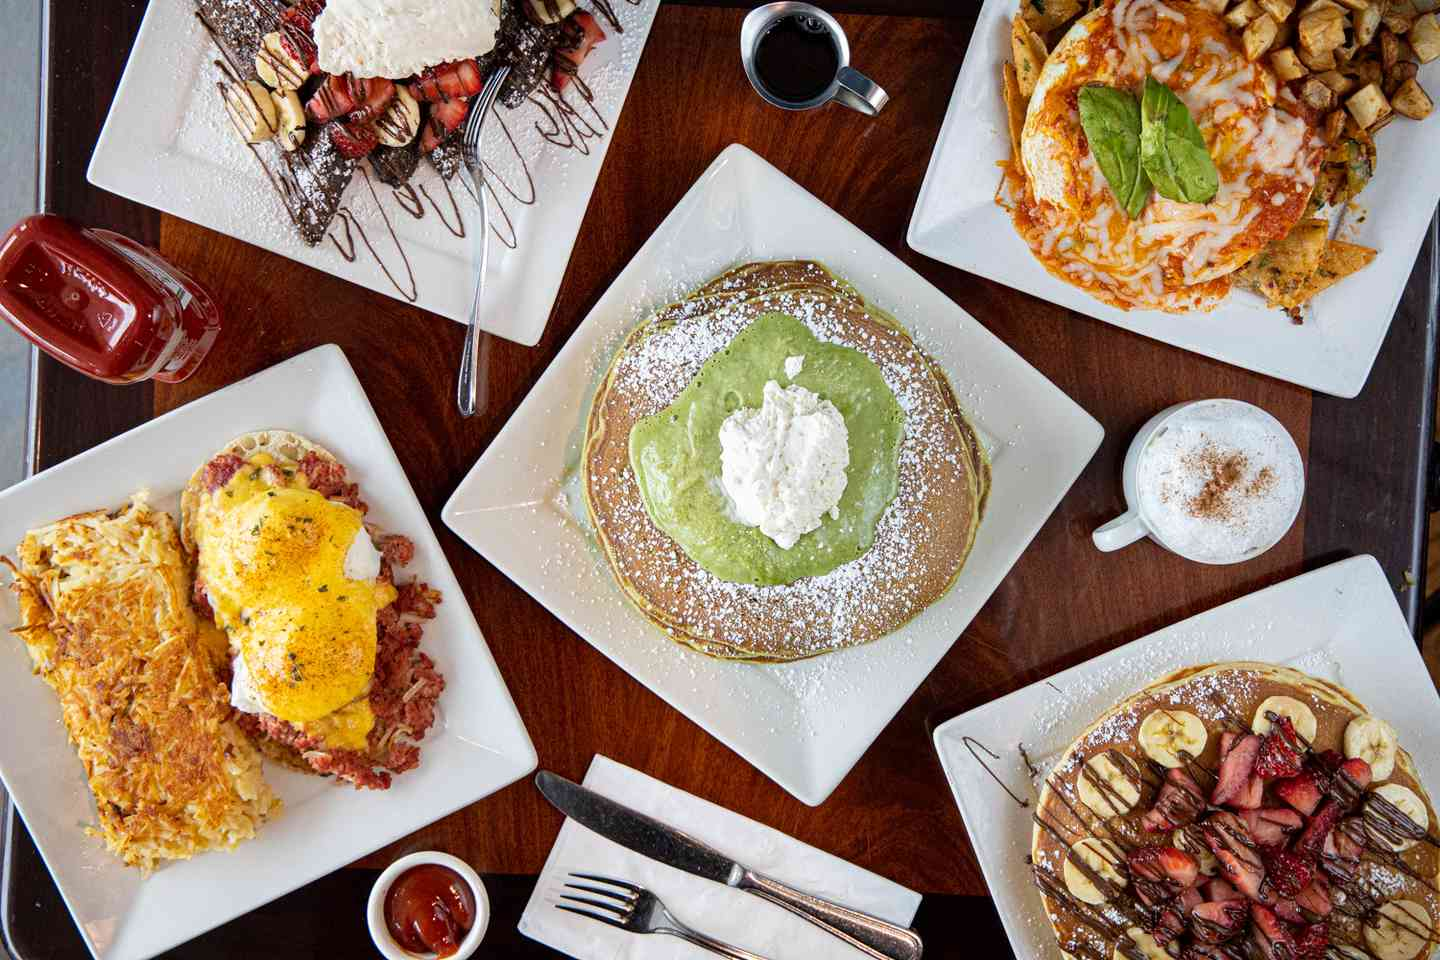 overhead shot of several plates of breakfast food